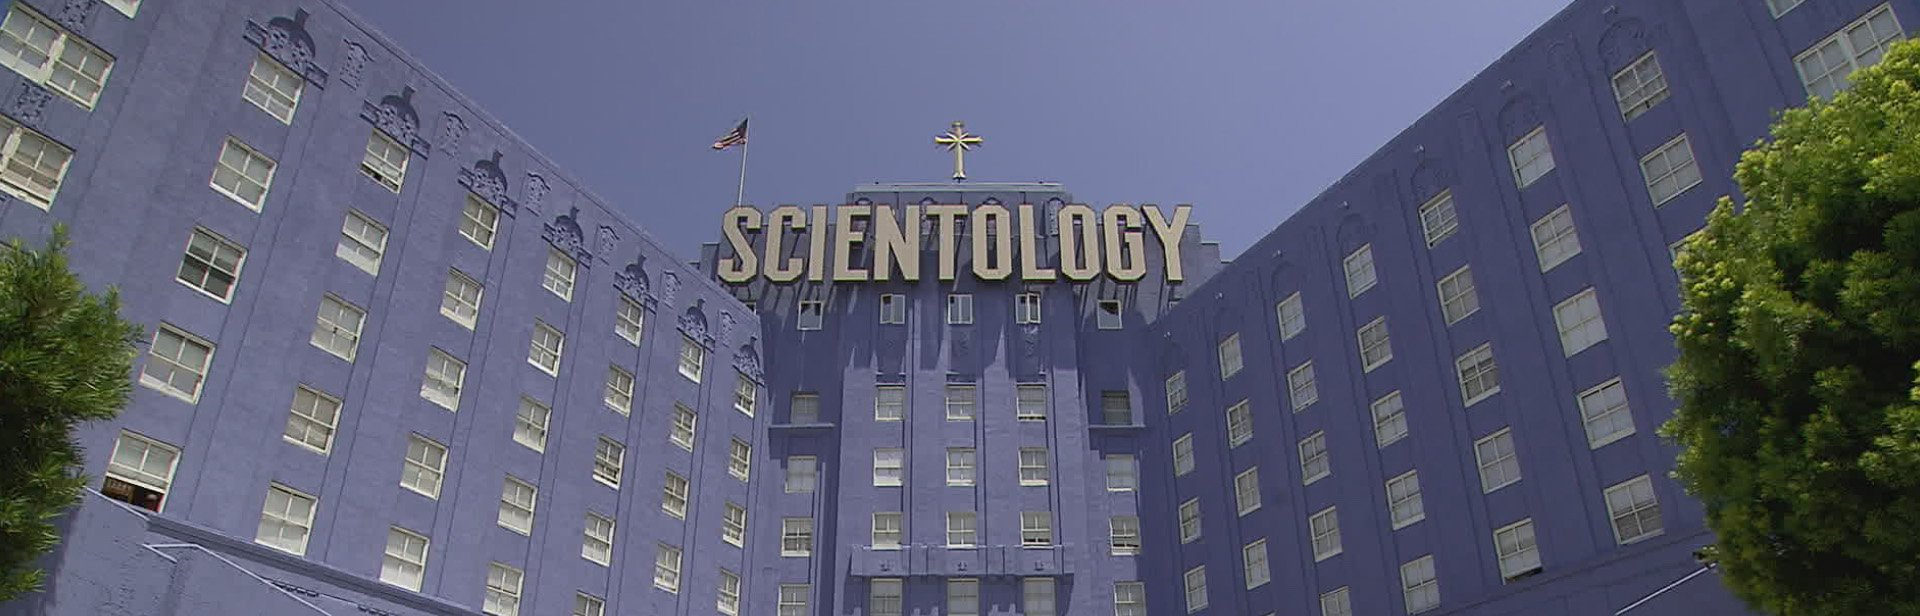 Film: Going Clear: Scientology and the Prison of Belief feature image